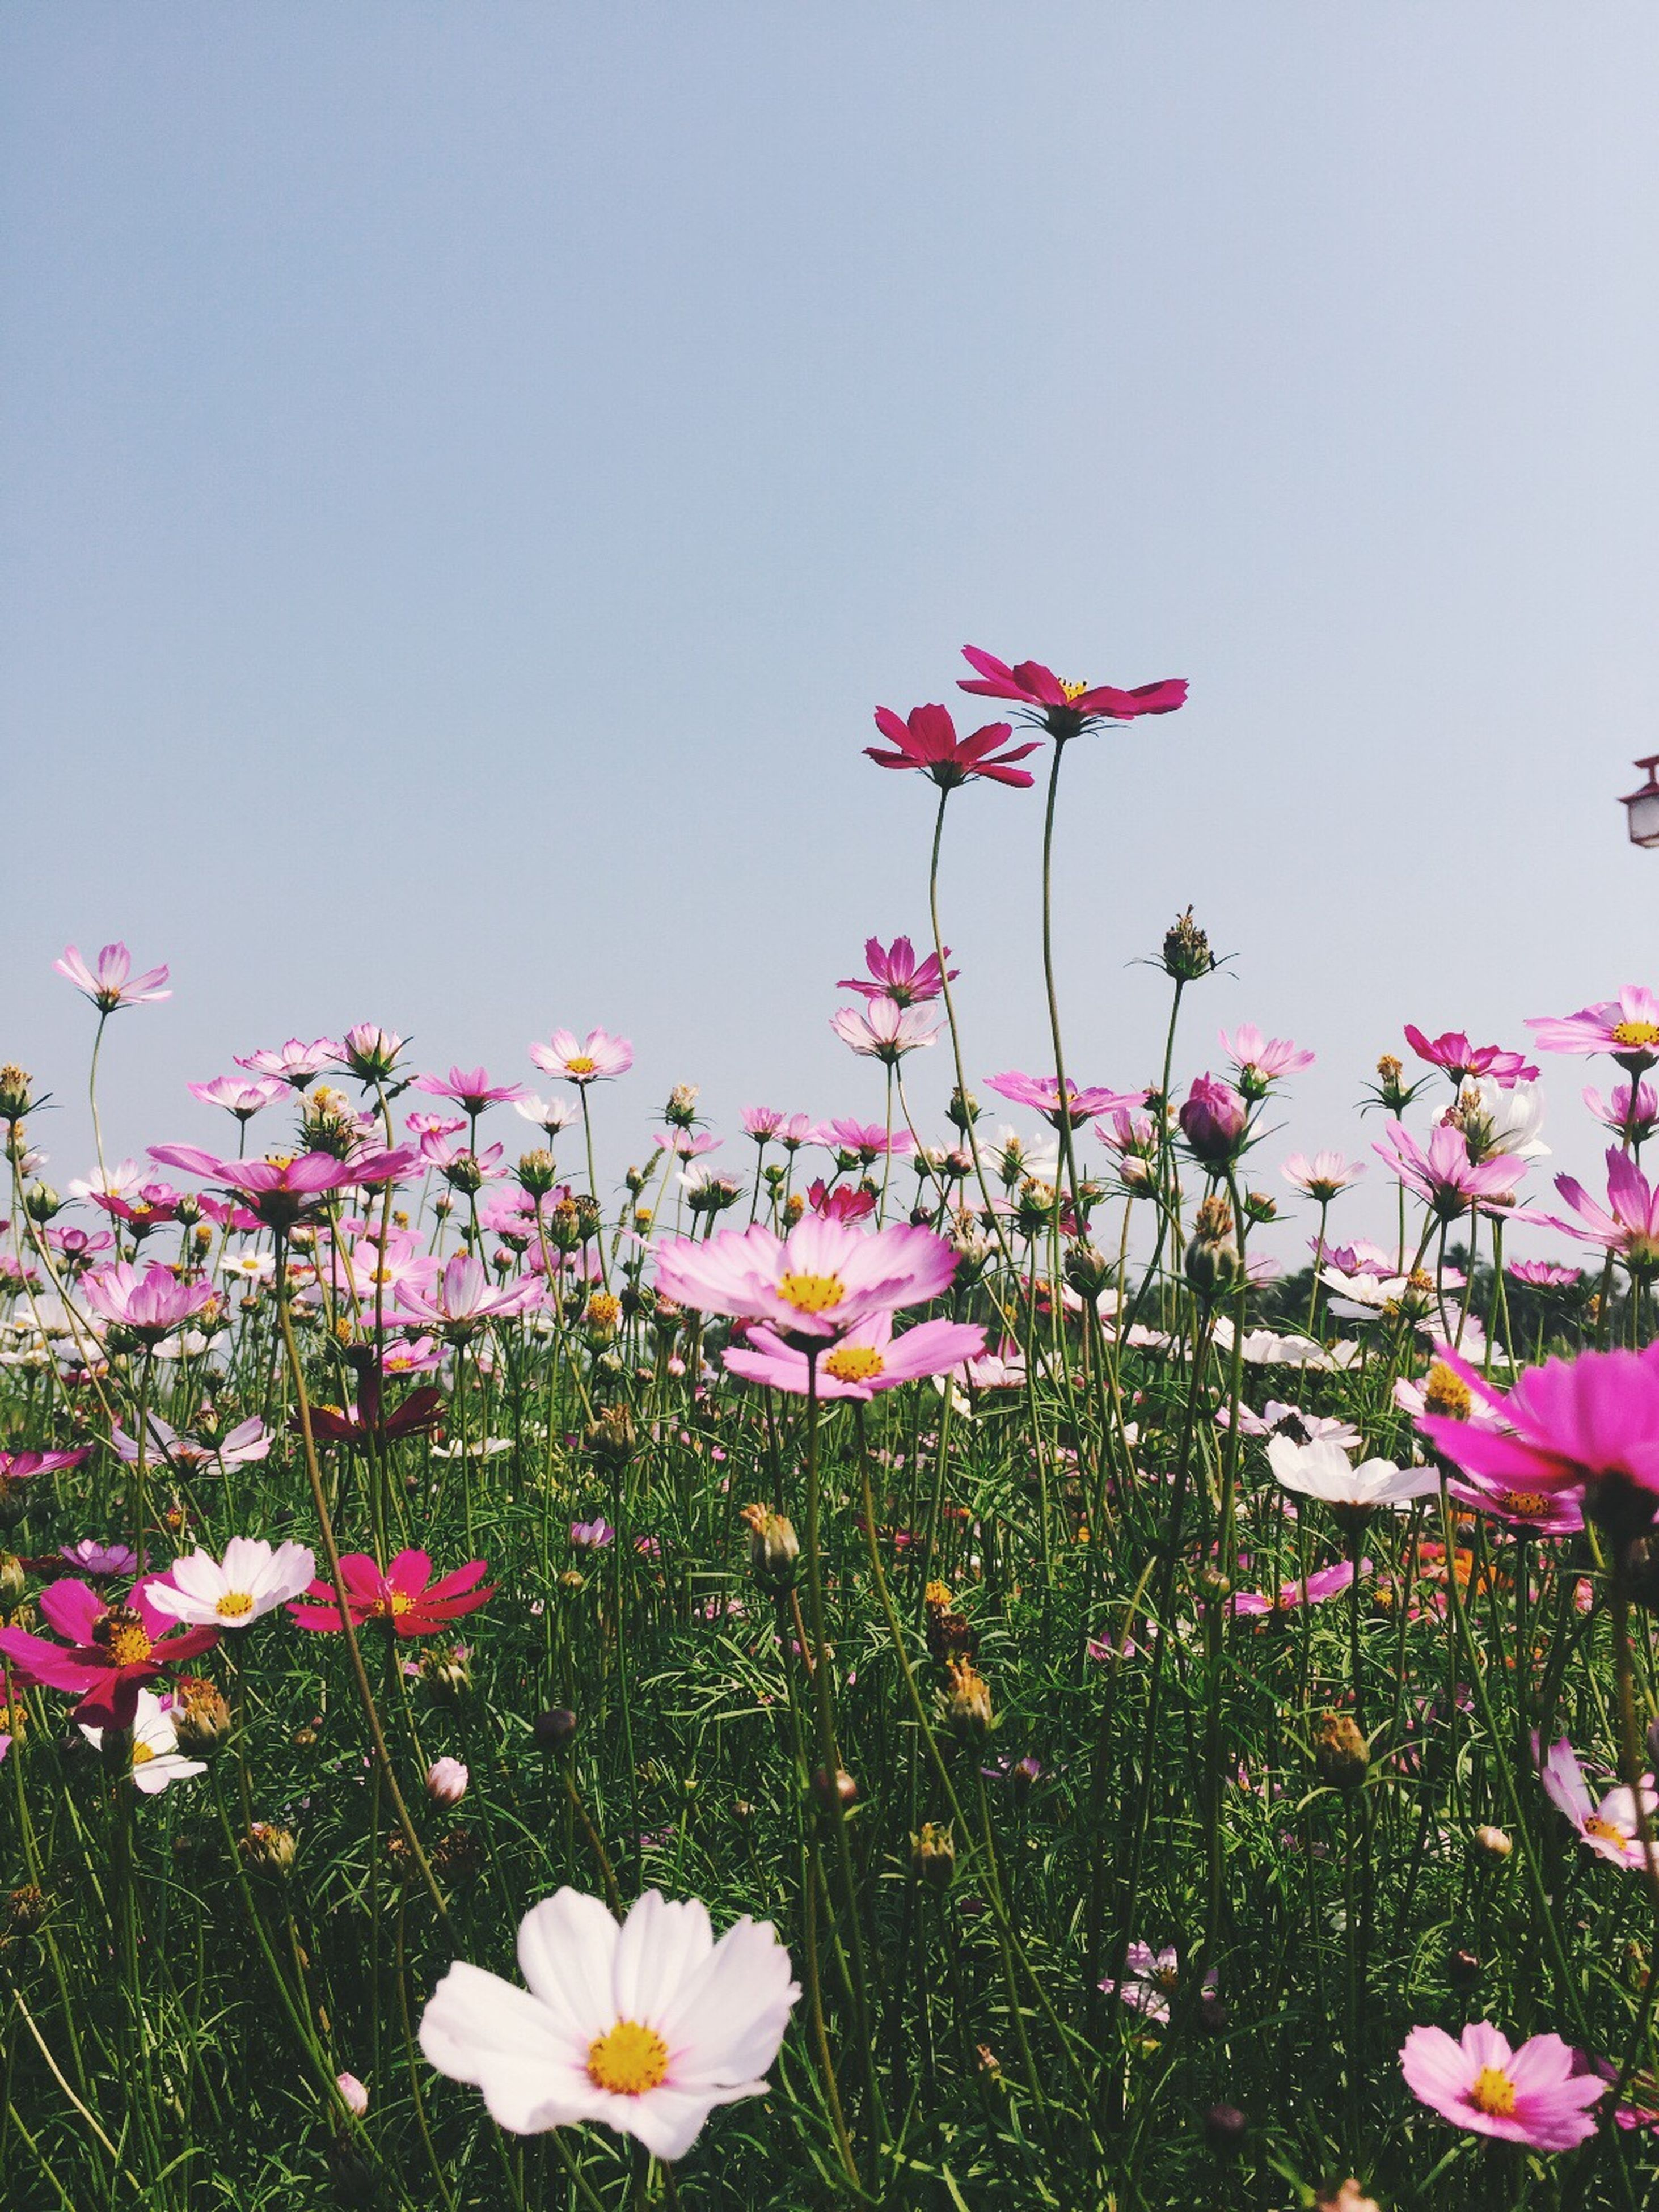 flower, freshness, fragility, petal, growth, beauty in nature, field, clear sky, blooming, flower head, nature, grass, plant, in bloom, copy space, stem, meadow, blossom, wildflower, pink color